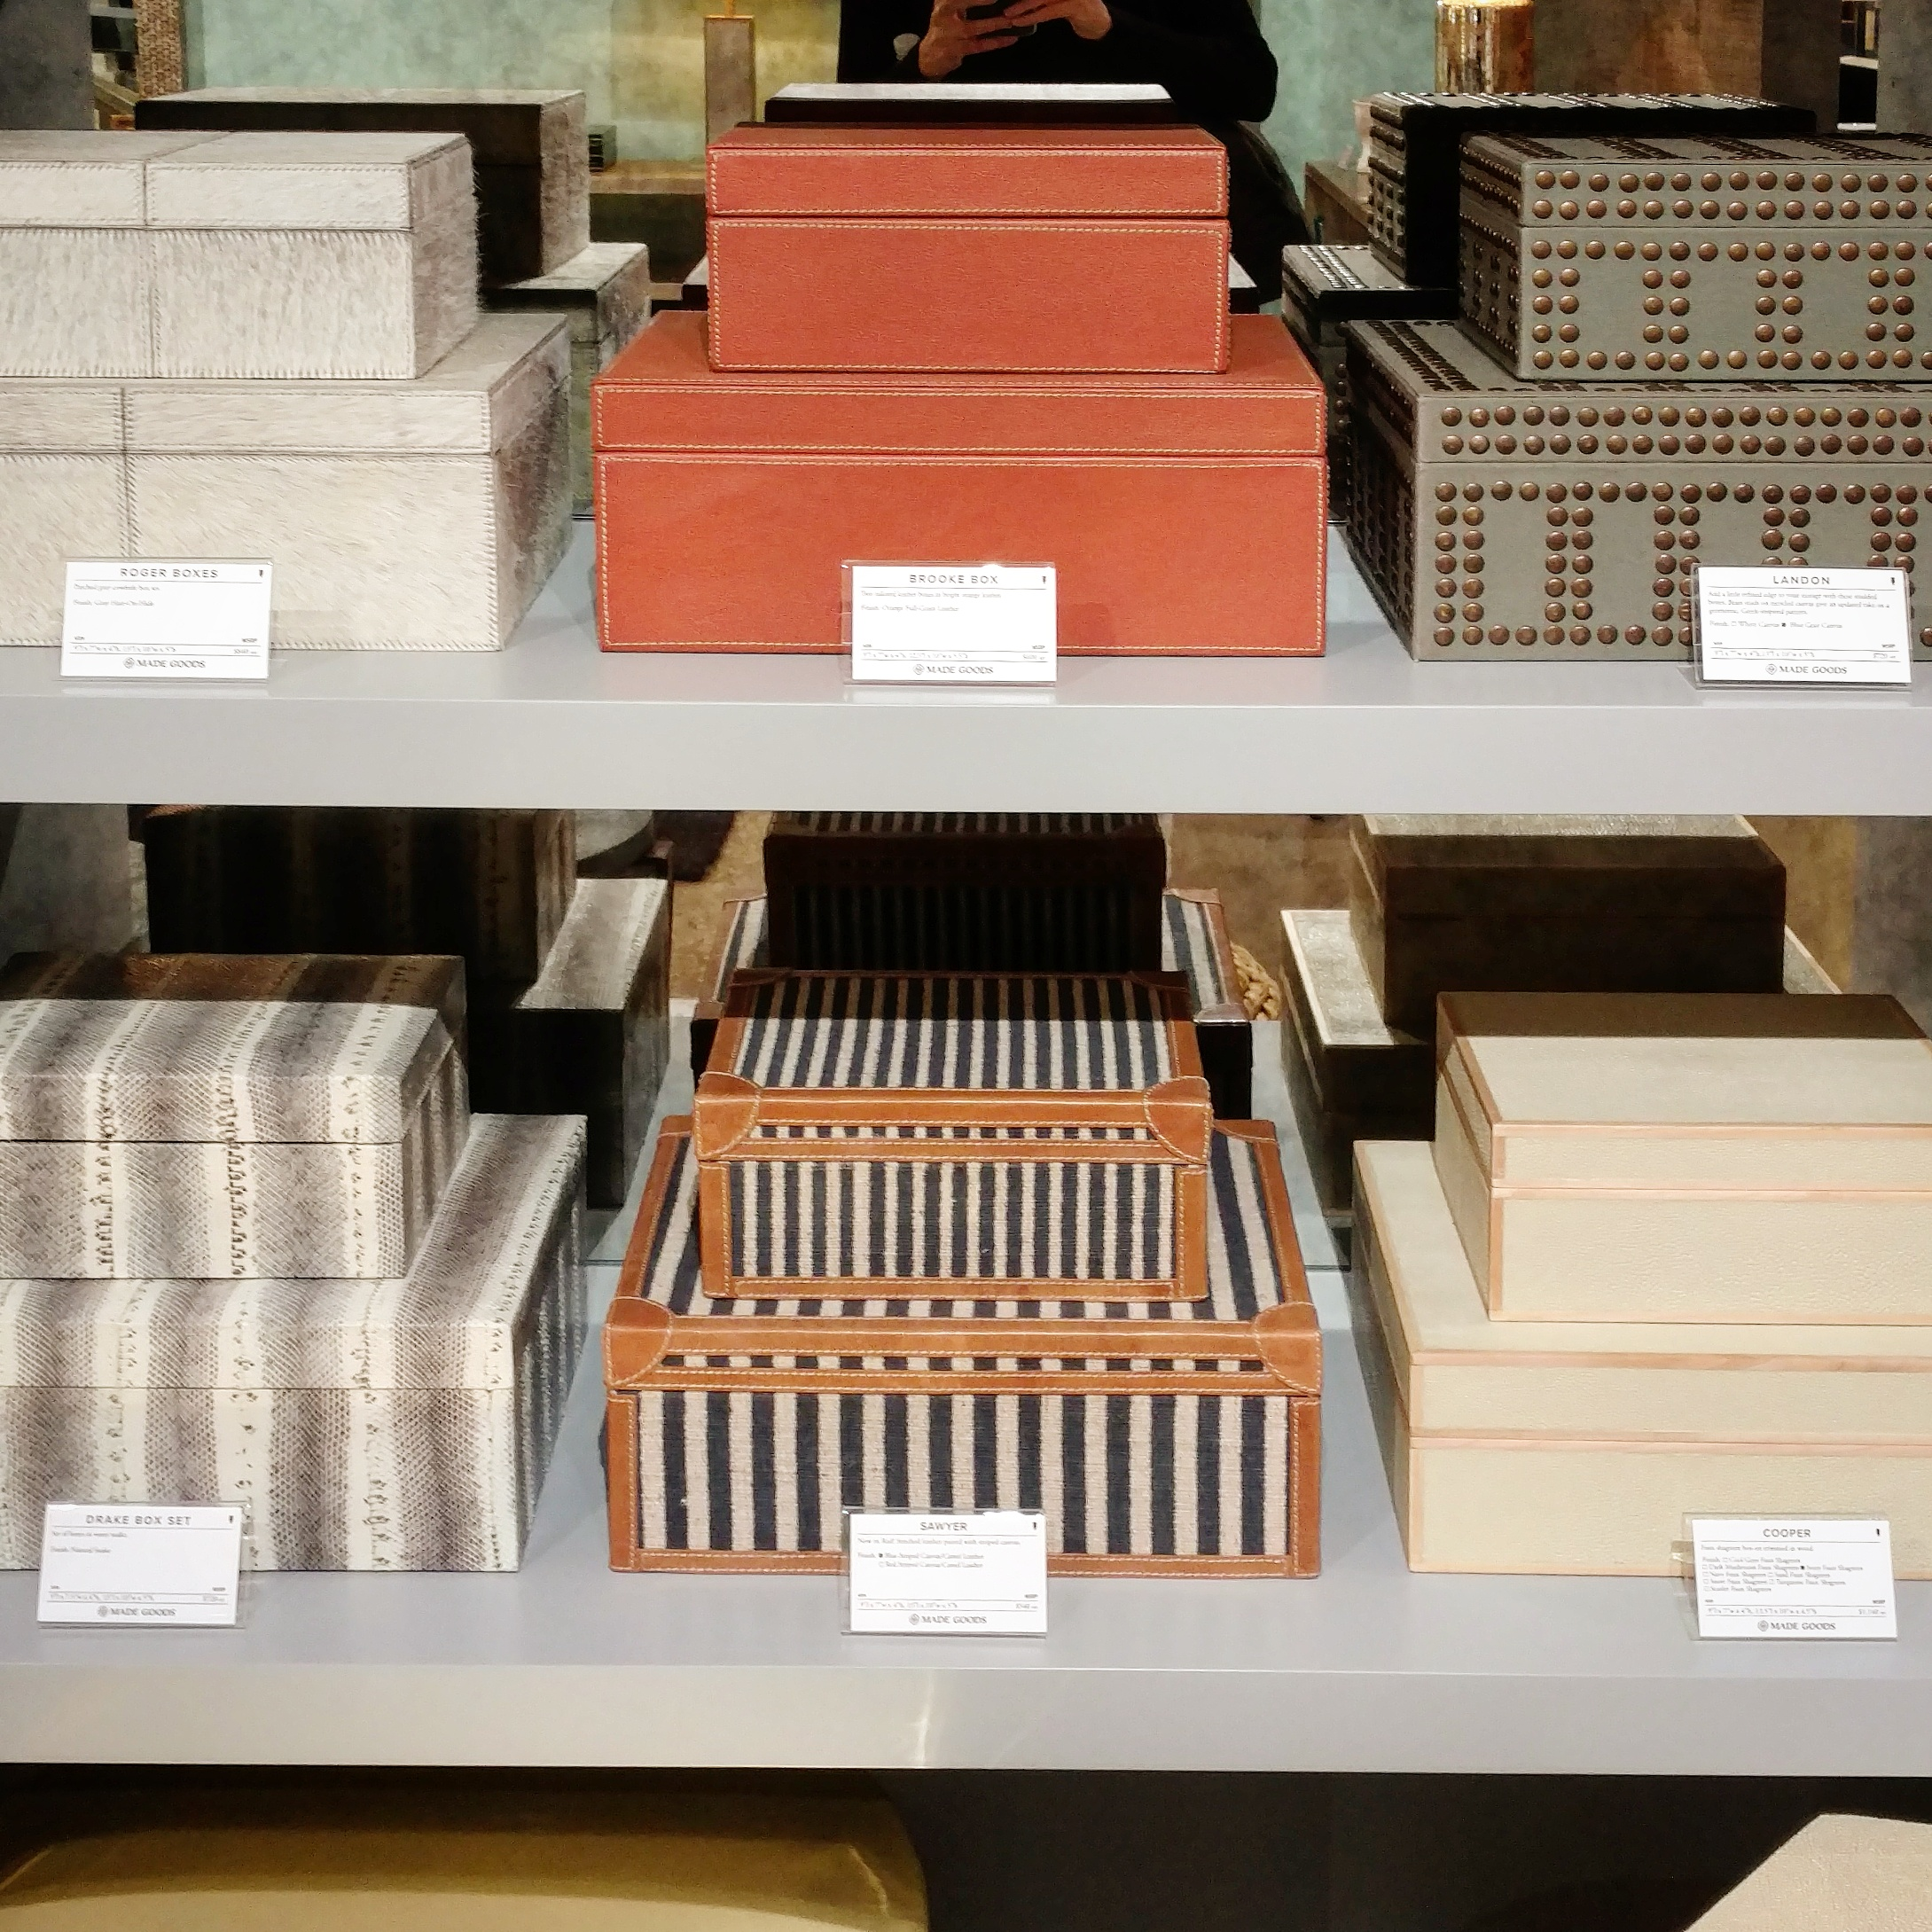 Made Goods - Stackable Boxes Display    Credit: Devon Fromm, Taken at Made Goods Chicago Showroom